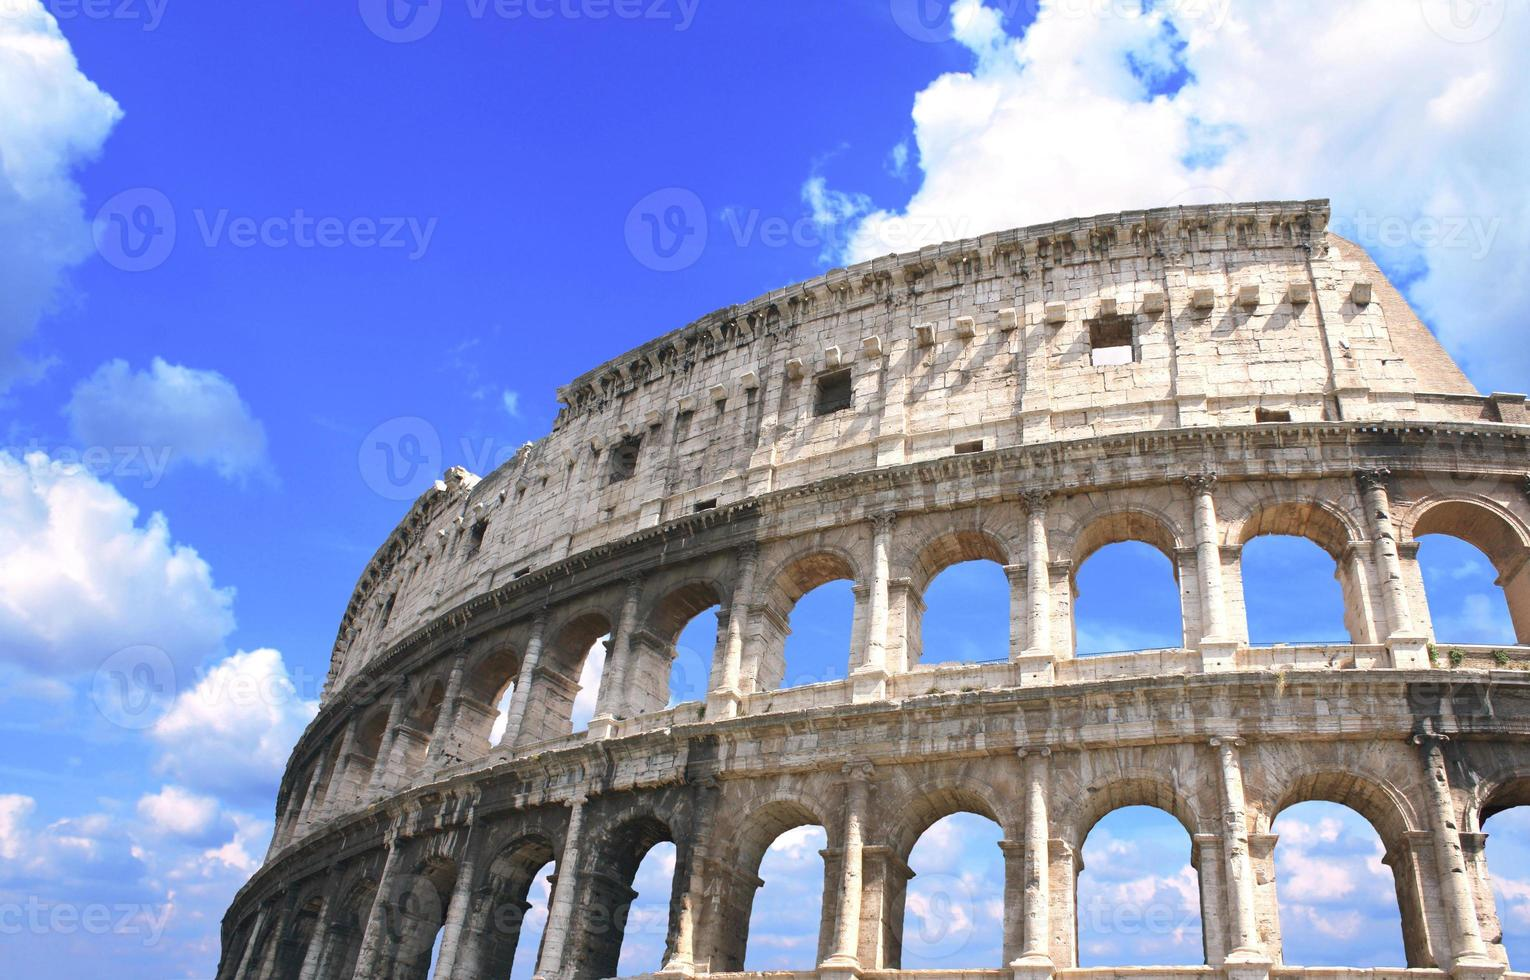 Ancient Colosseum, Rome, Italy photo